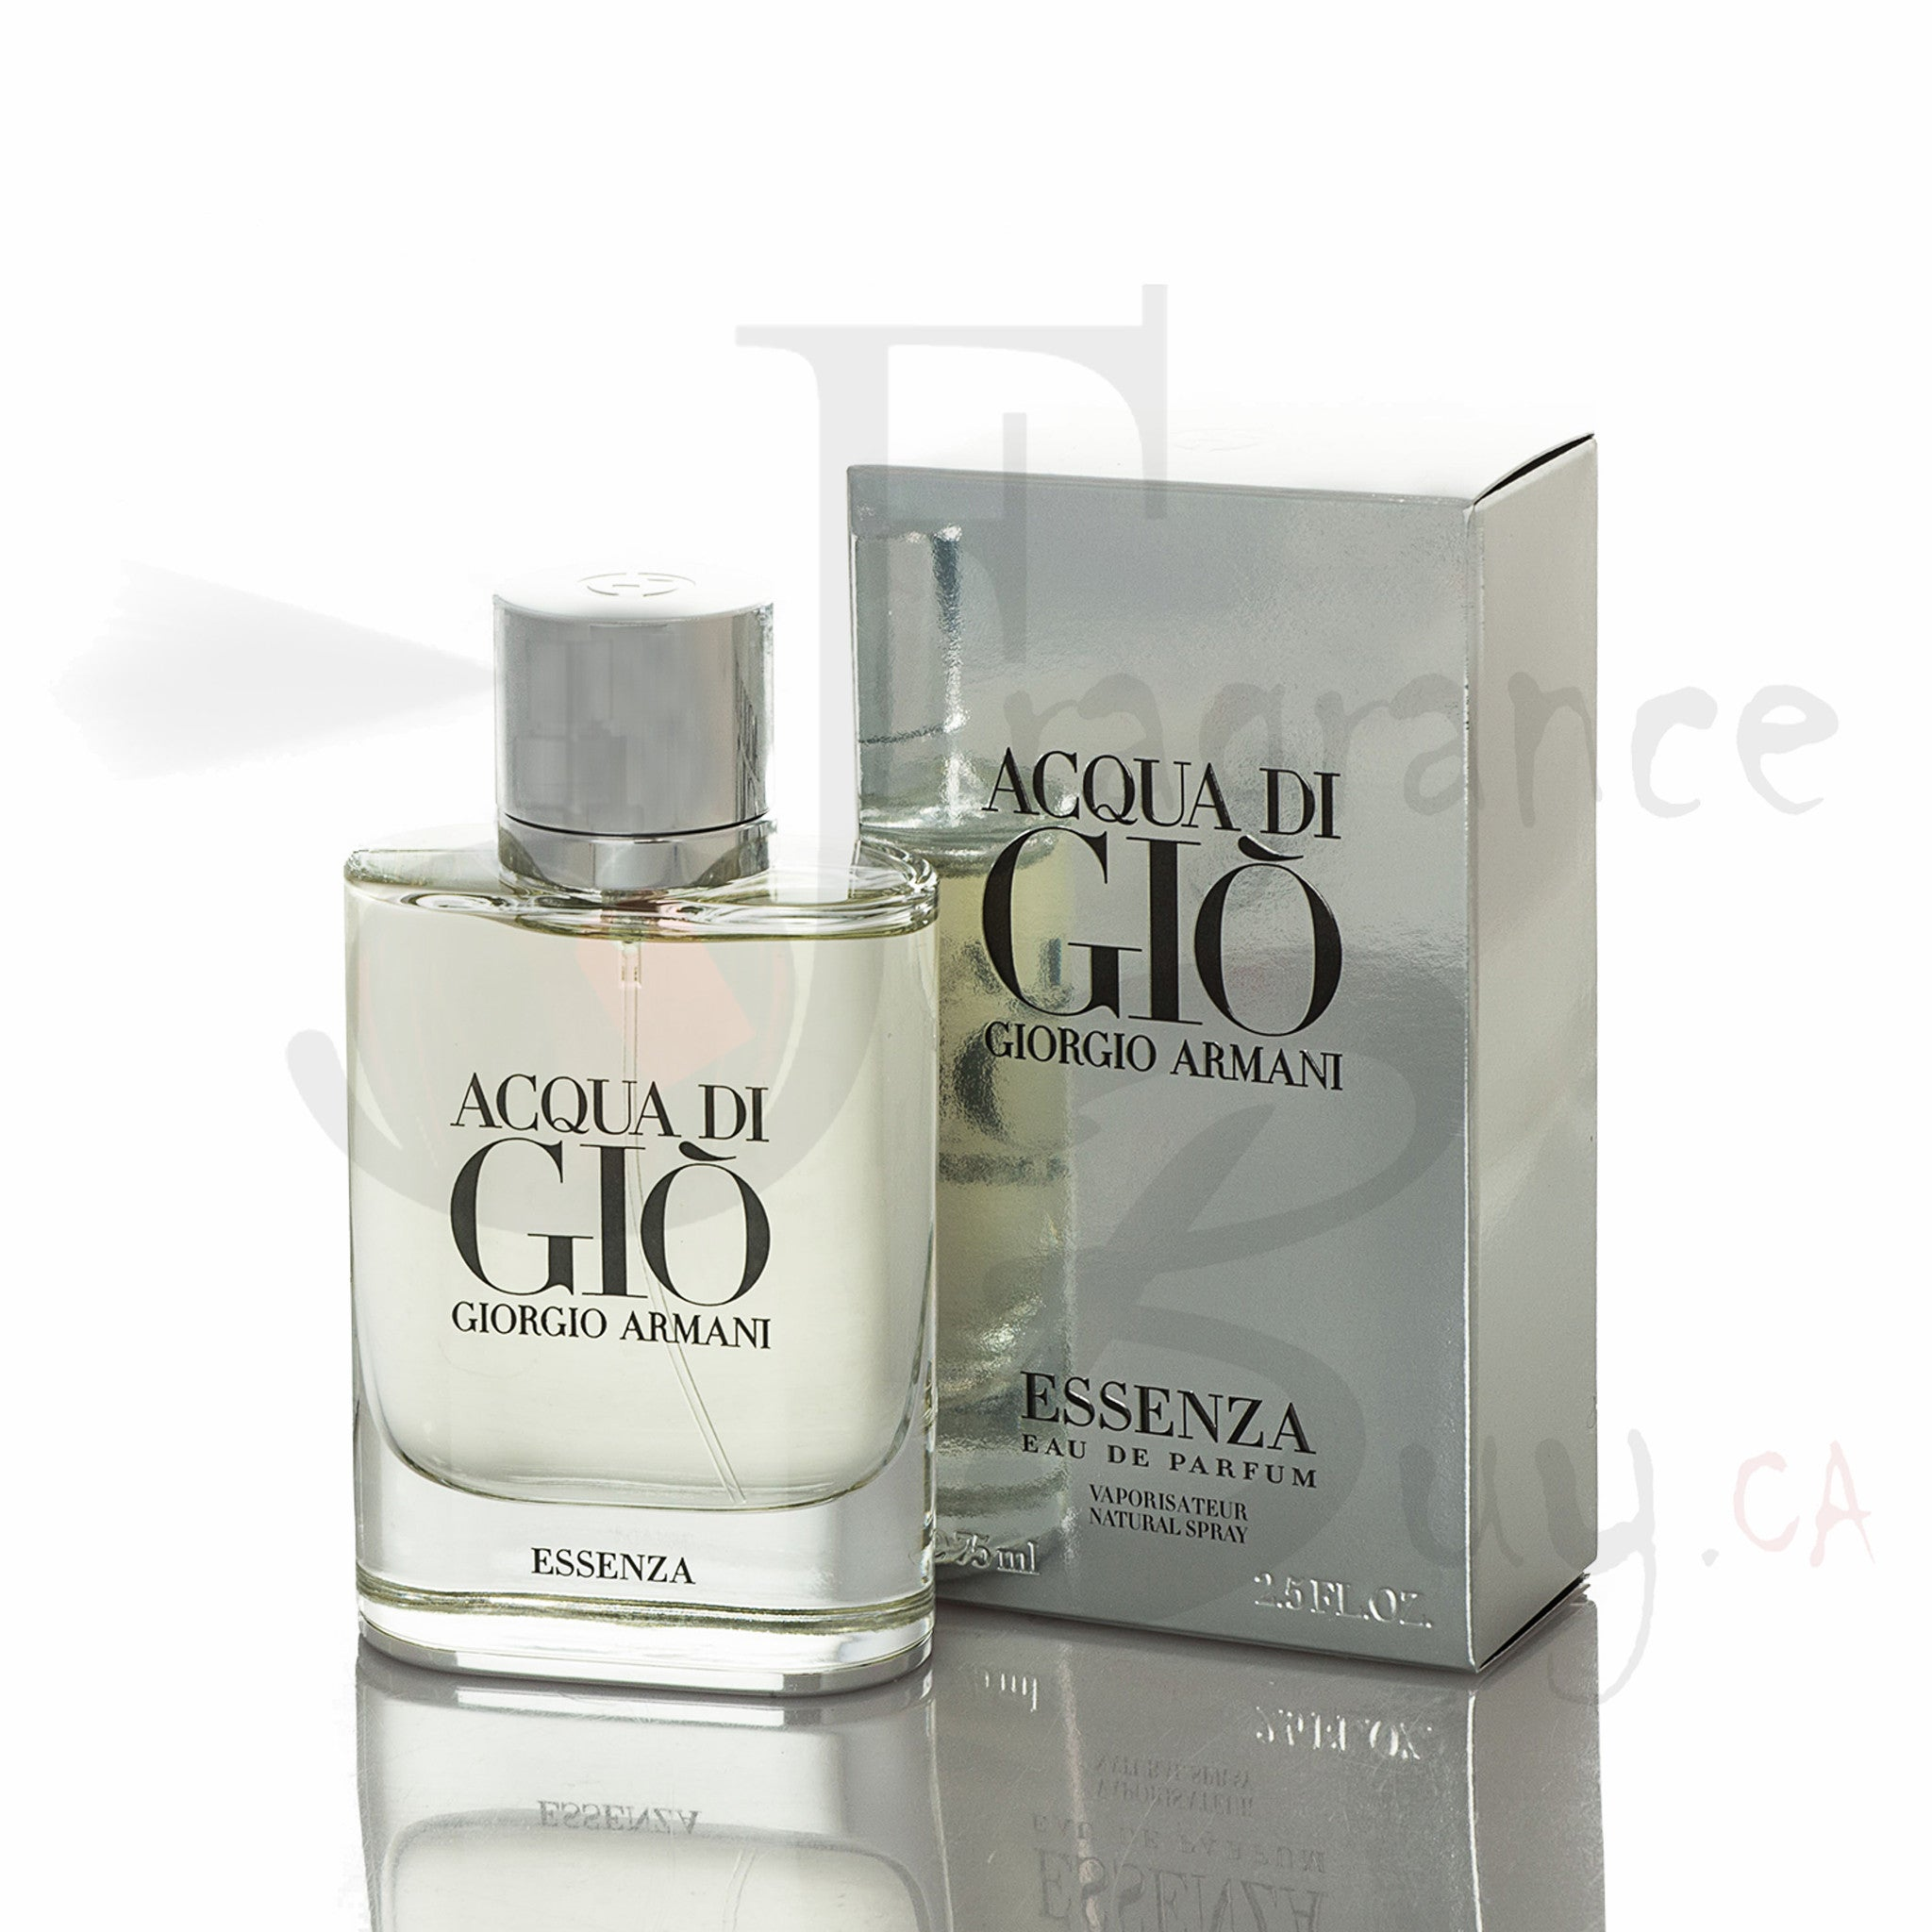 Giorgio Armani Acqua Di Gio Essenza EDP For Man